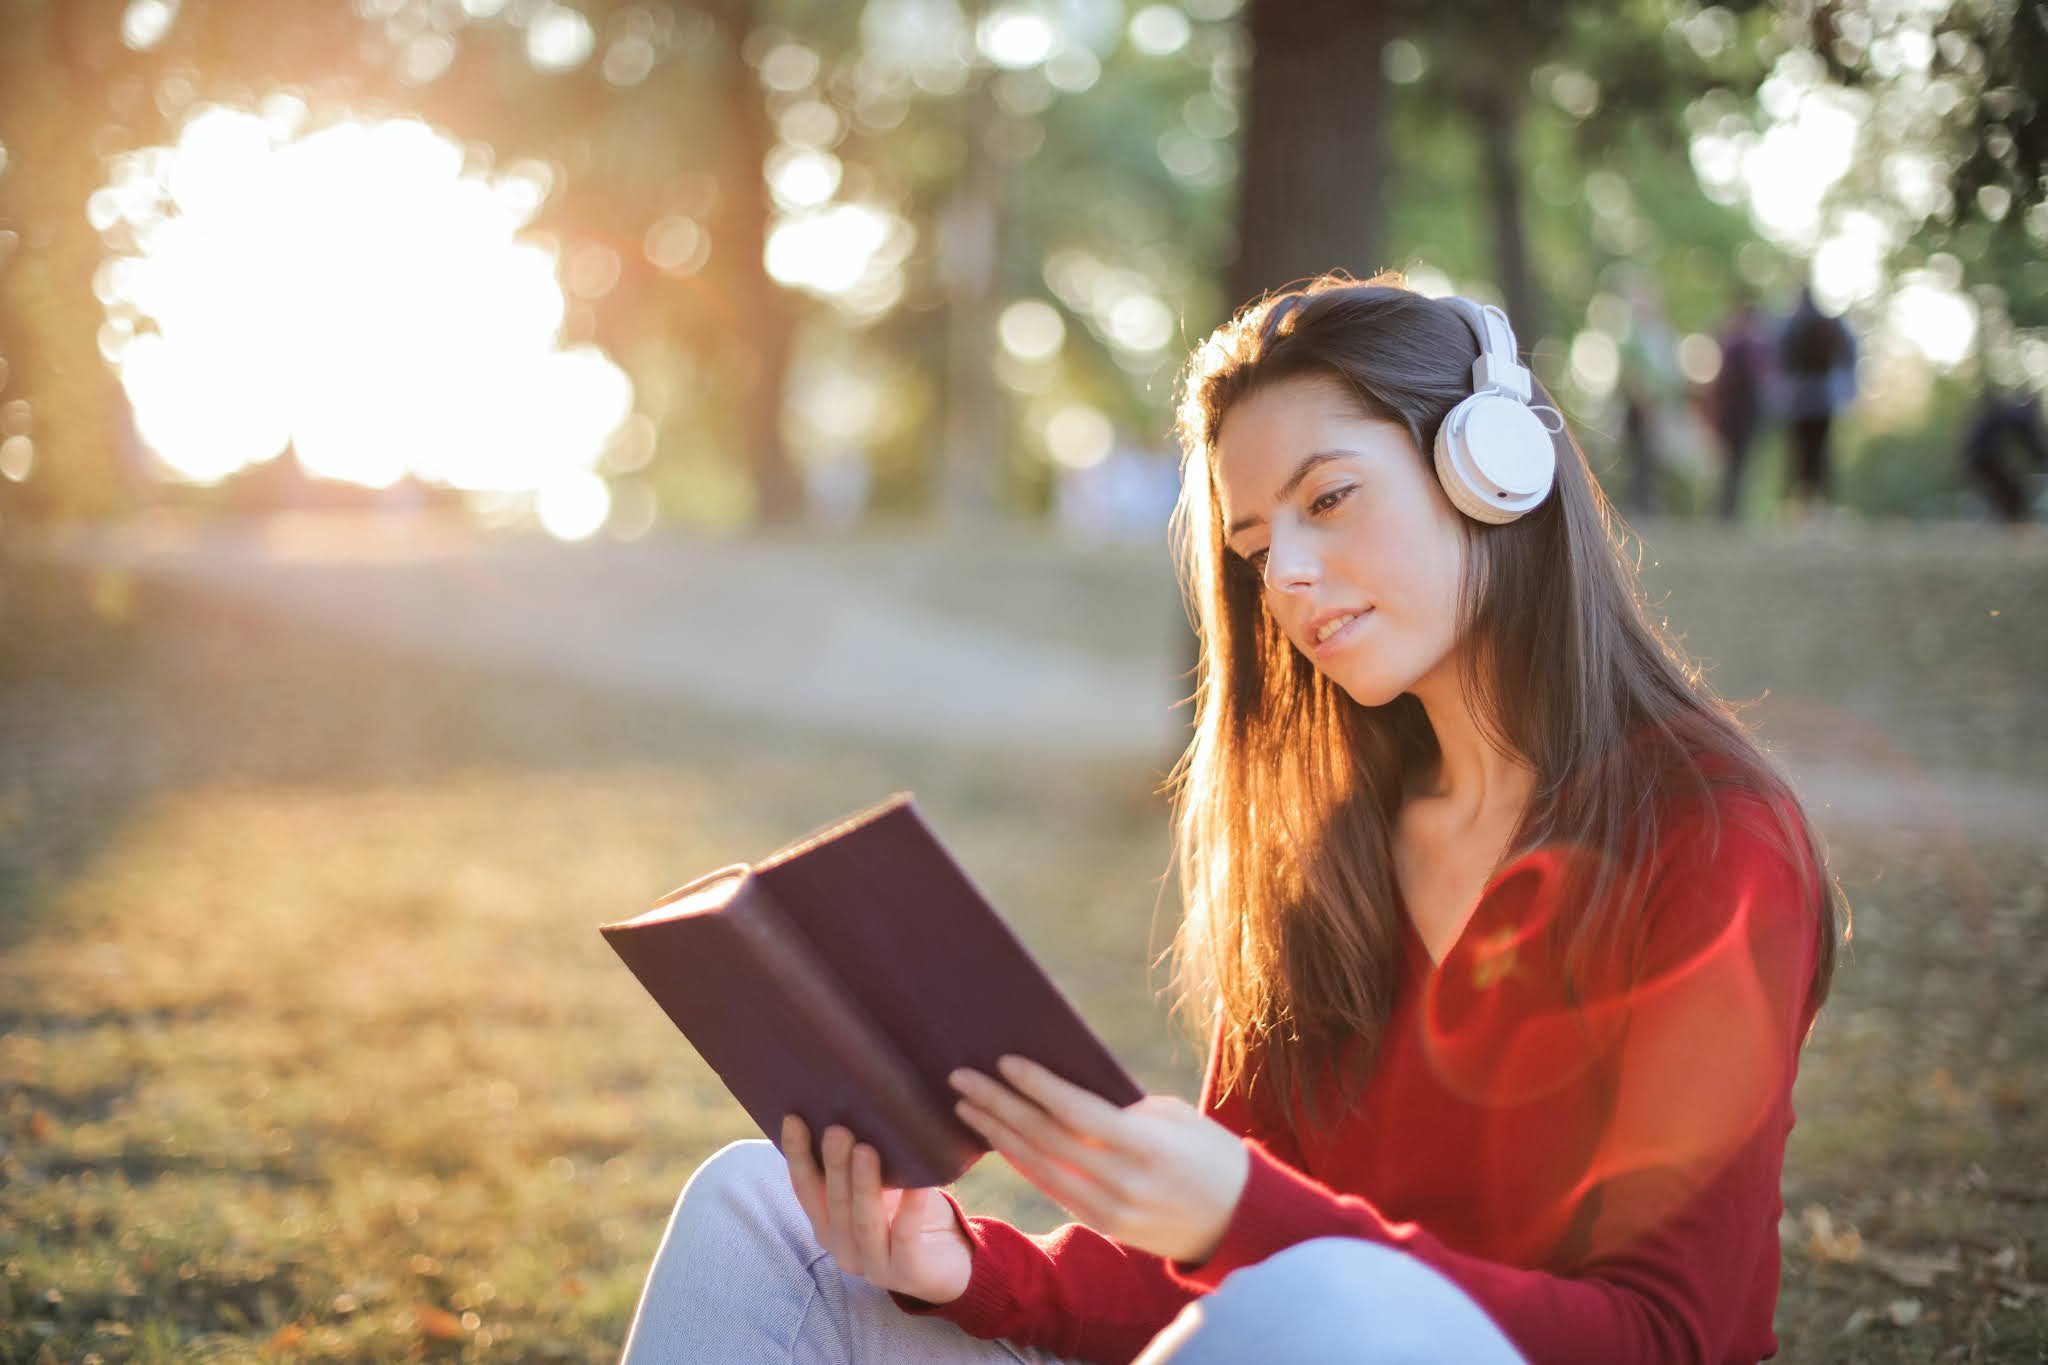 Girl wearing headphones reading a book. Photo by Andrea Piacquadio from Pexels